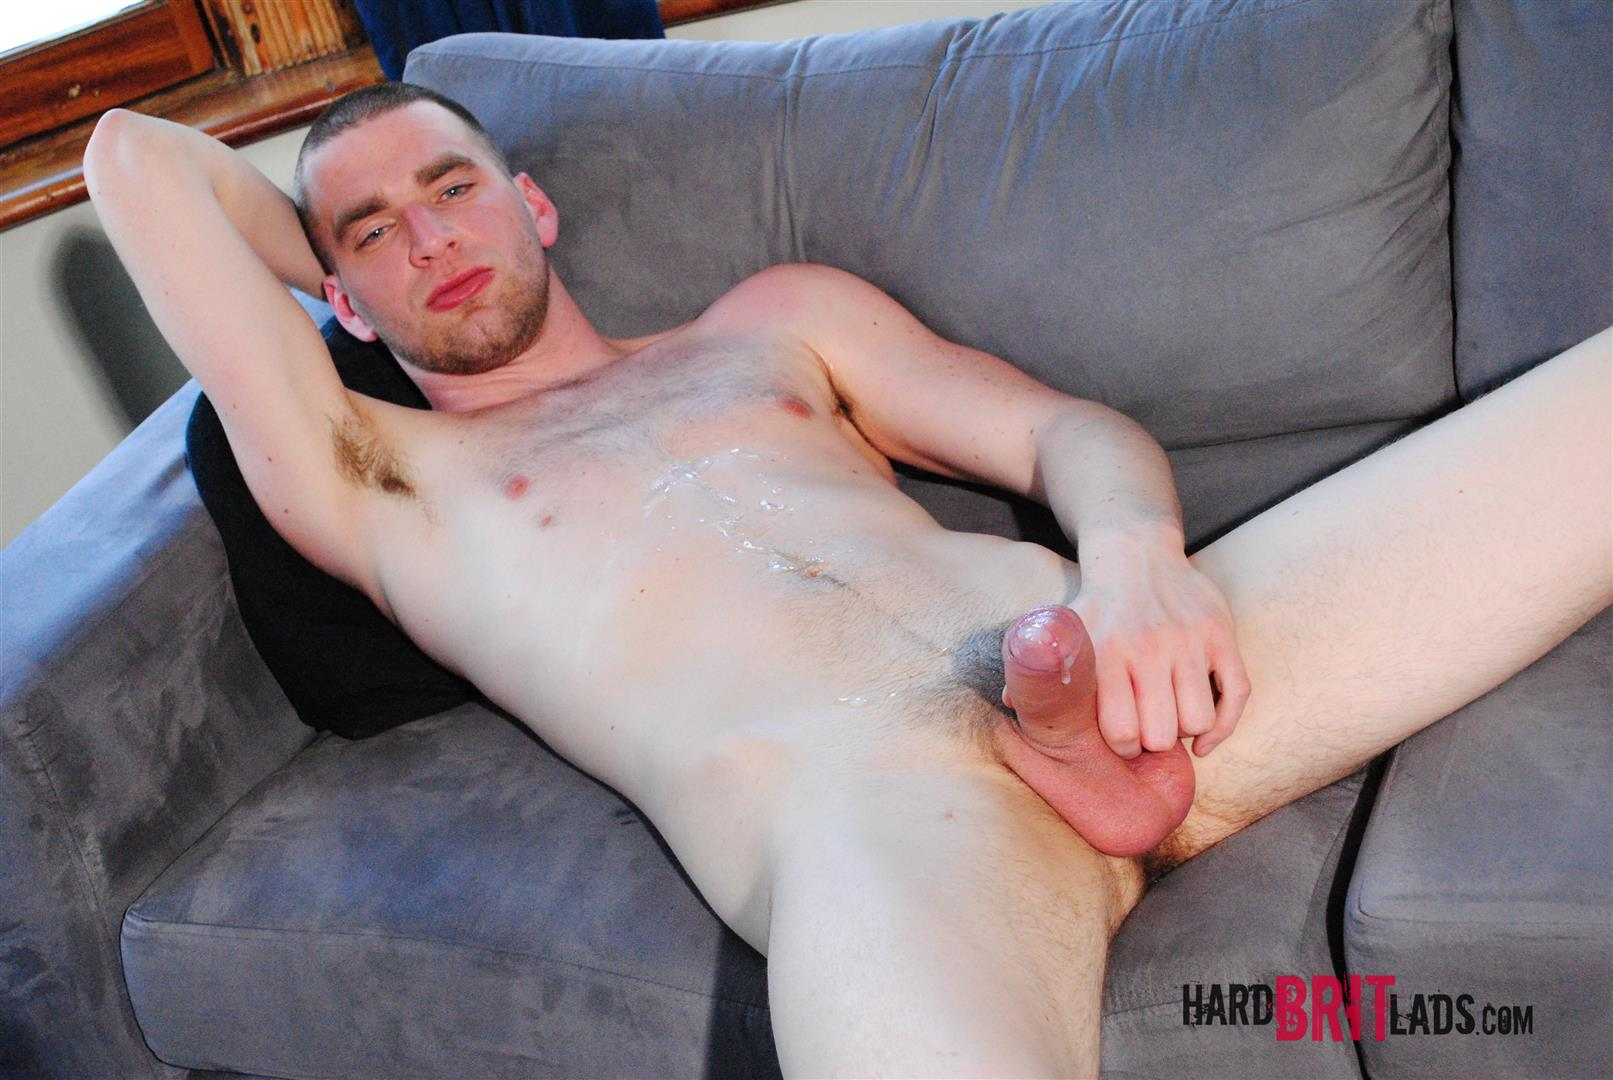 Hard-Brit-Lads-Blake-D-Big-Uncut-Cock-Masturbation-Amateur-Gay-Porn-22 British Jock Playing With His Massive Uncut Cock Squirts A Load